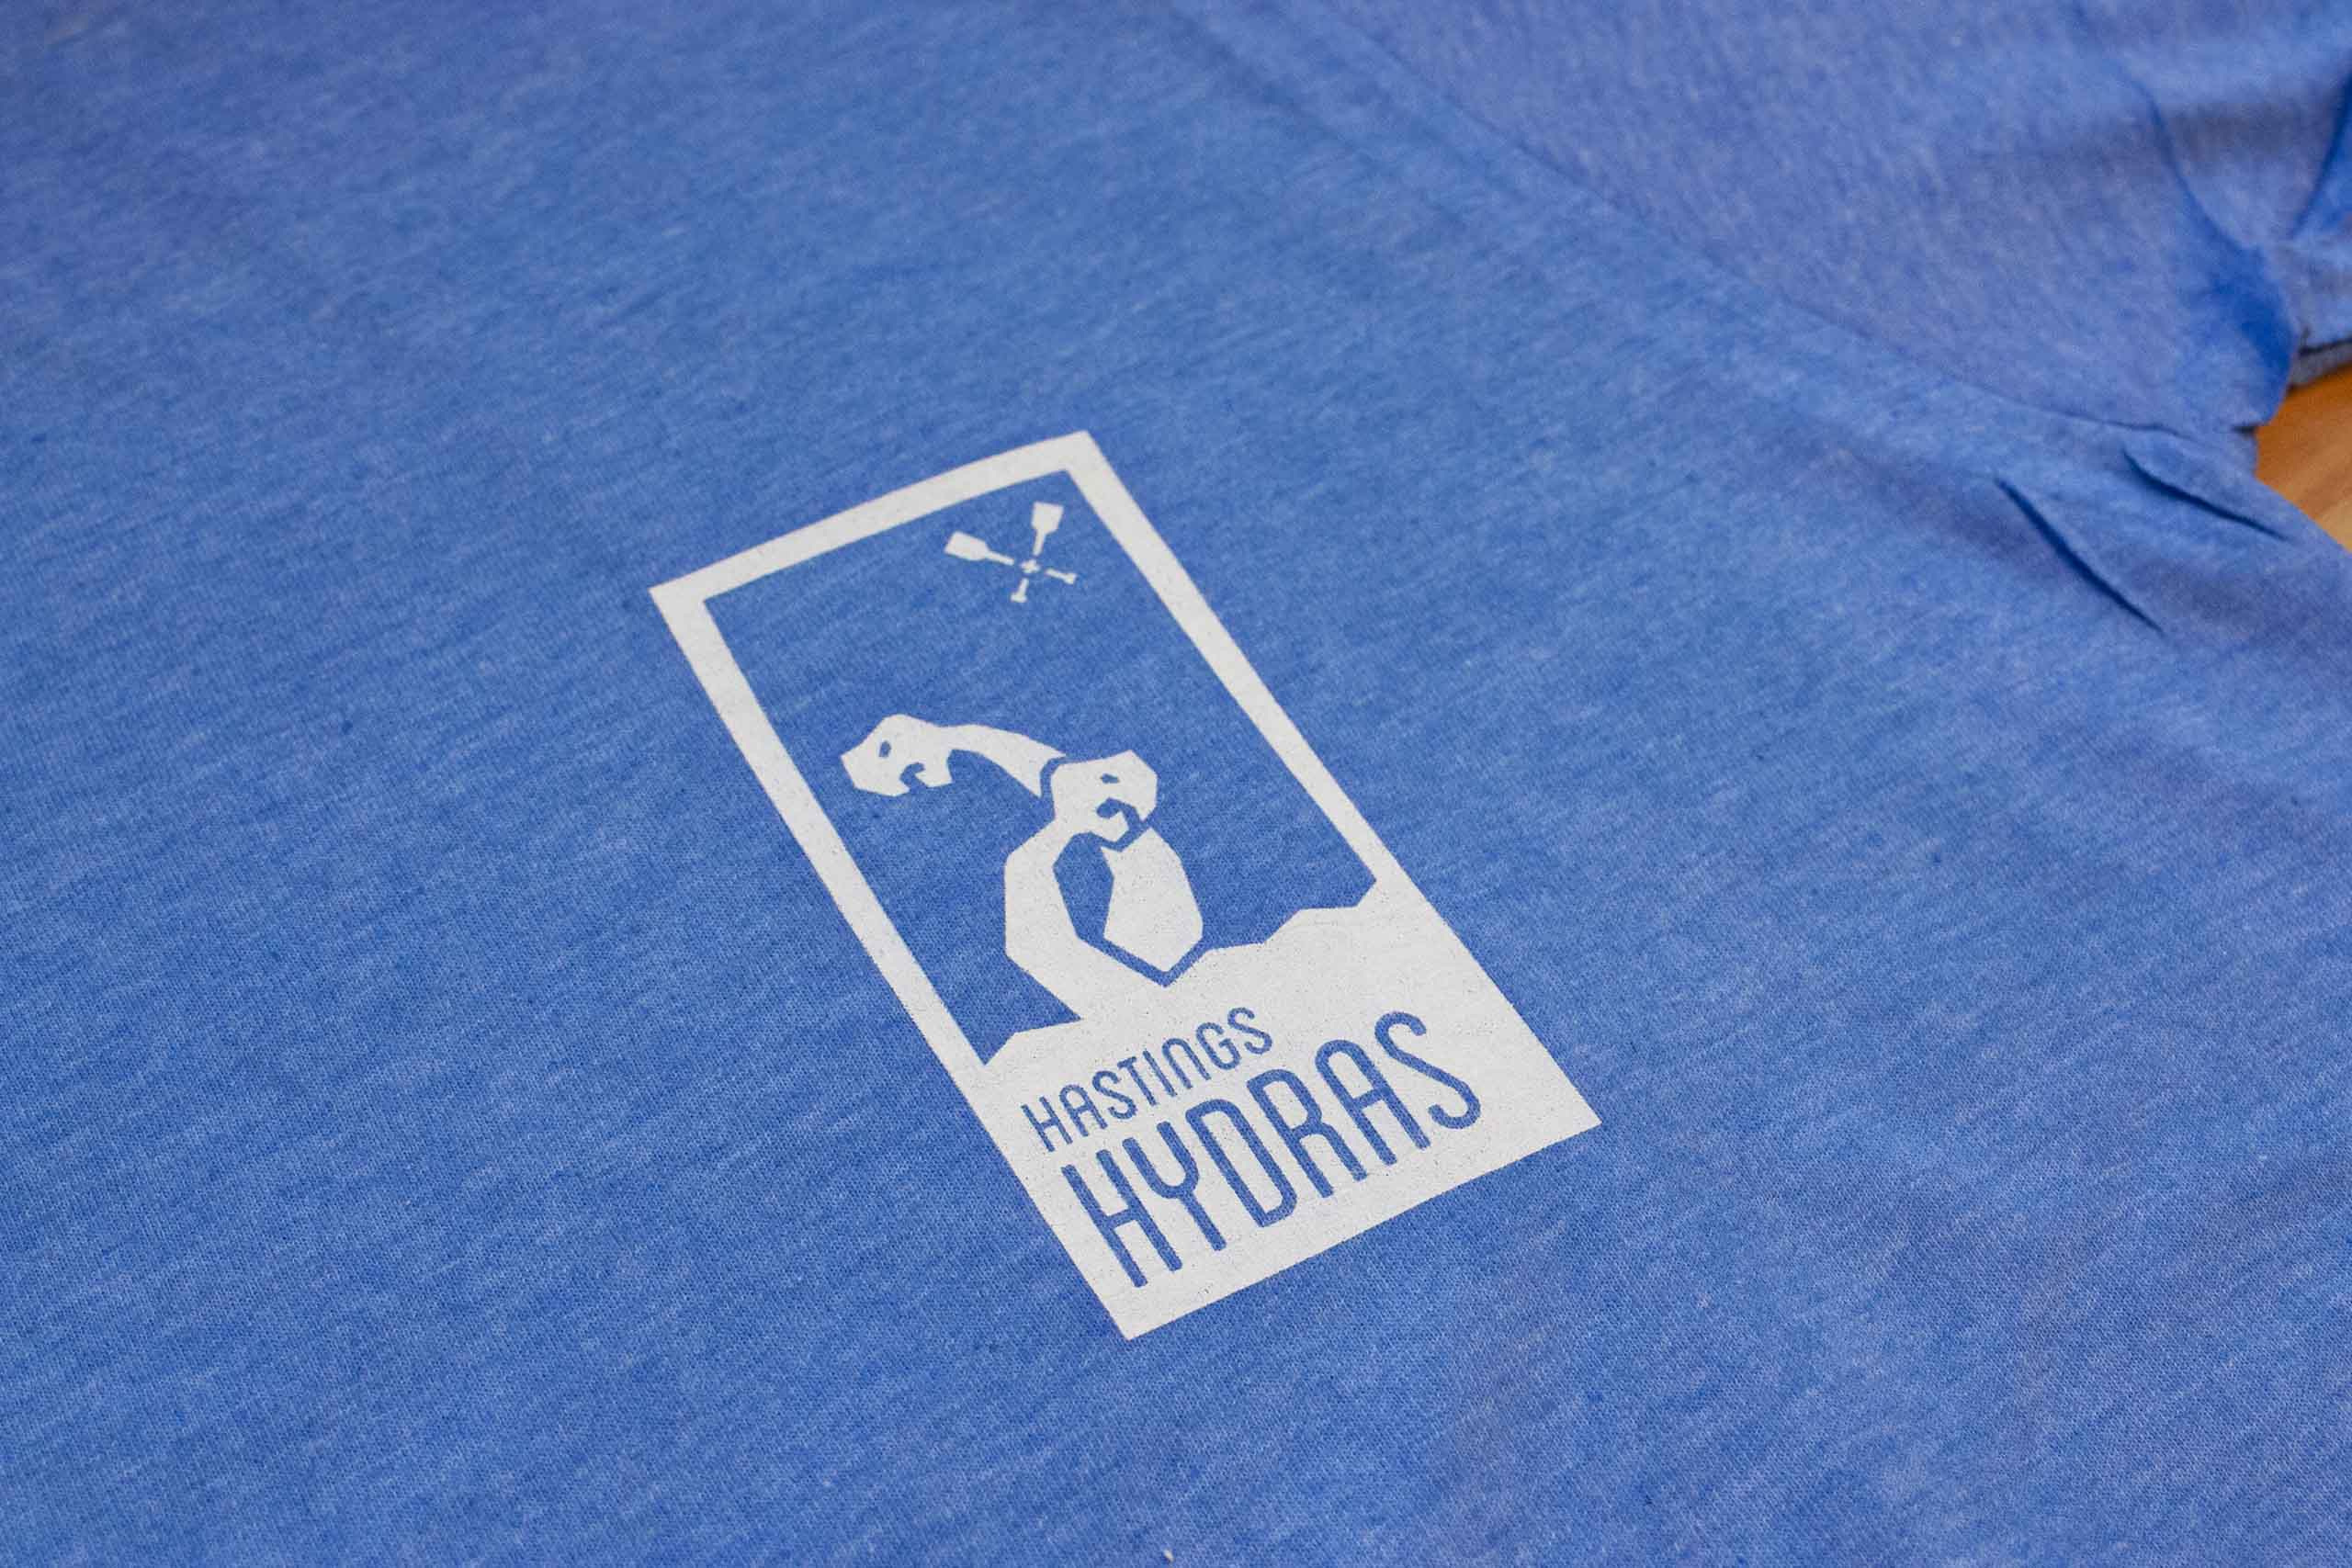 Close up of Hastings Hydras logo on a shirt — by Yagnyuk.